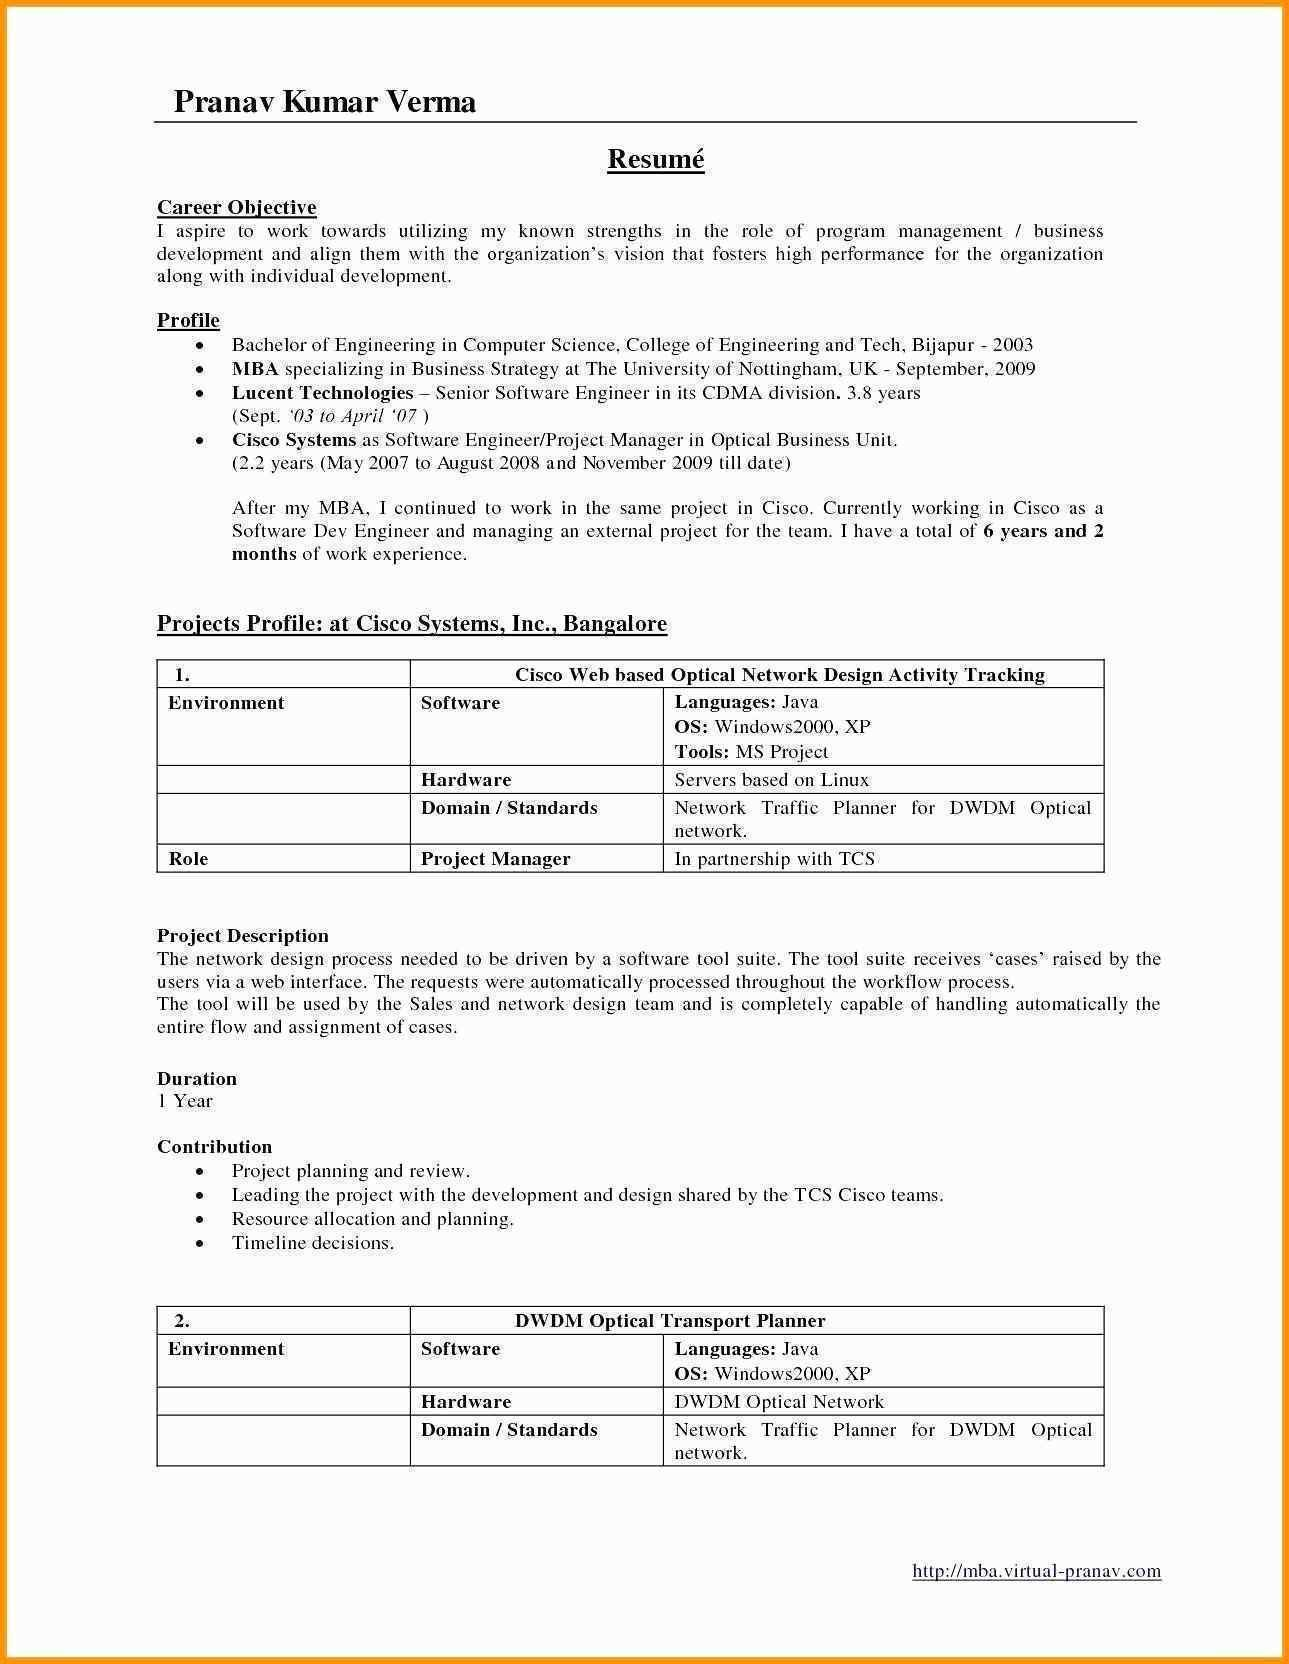 Resume Format For 6 Months Experience In Java Resume Templates